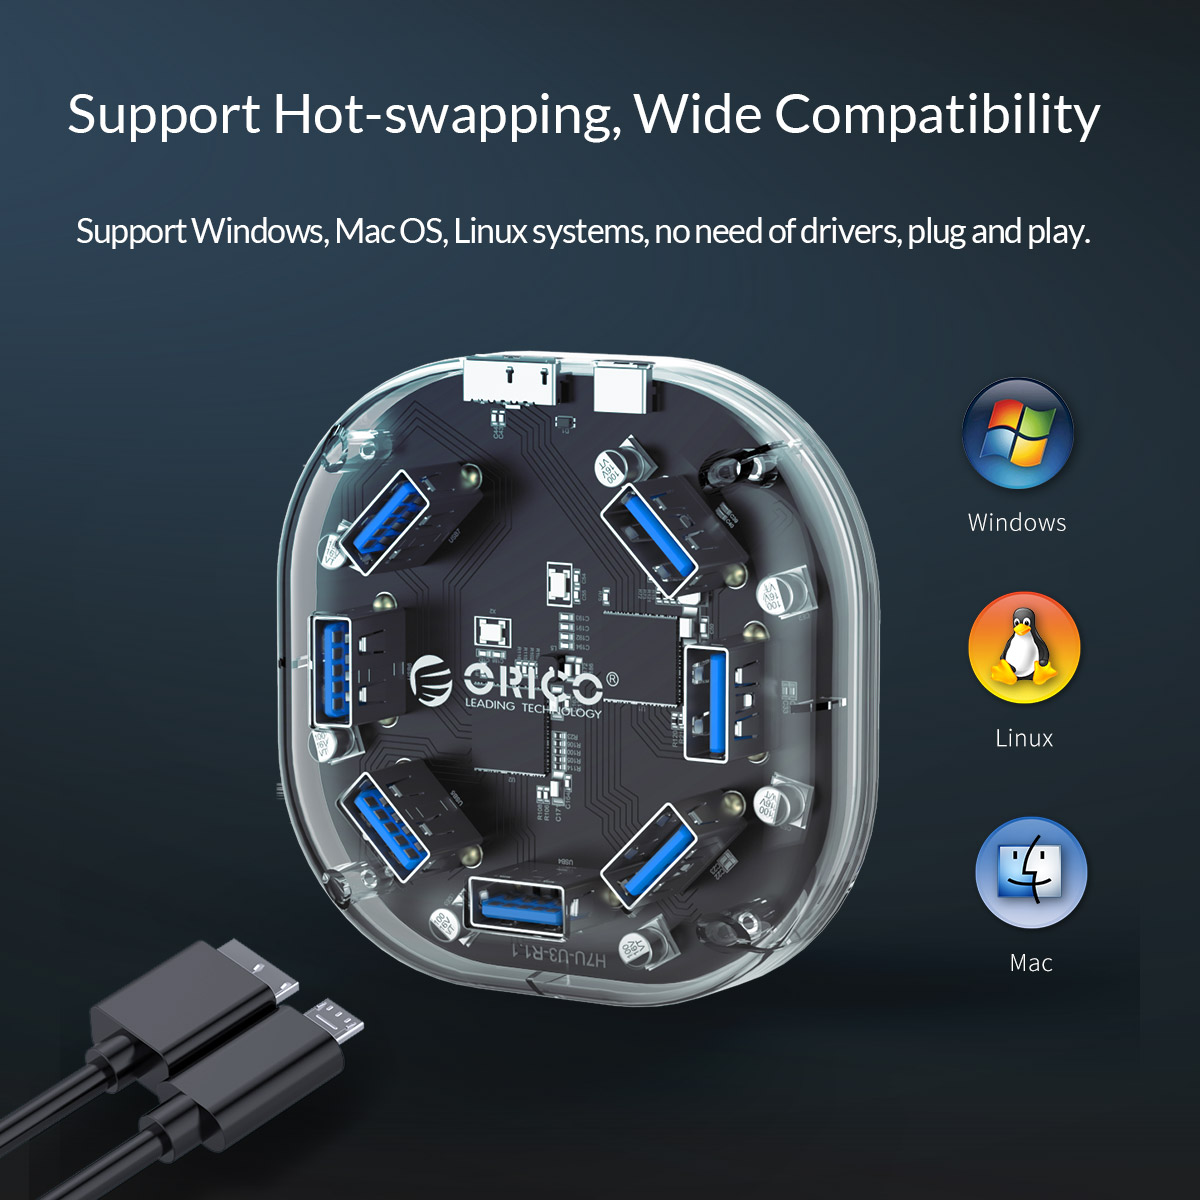 support hot-swapping